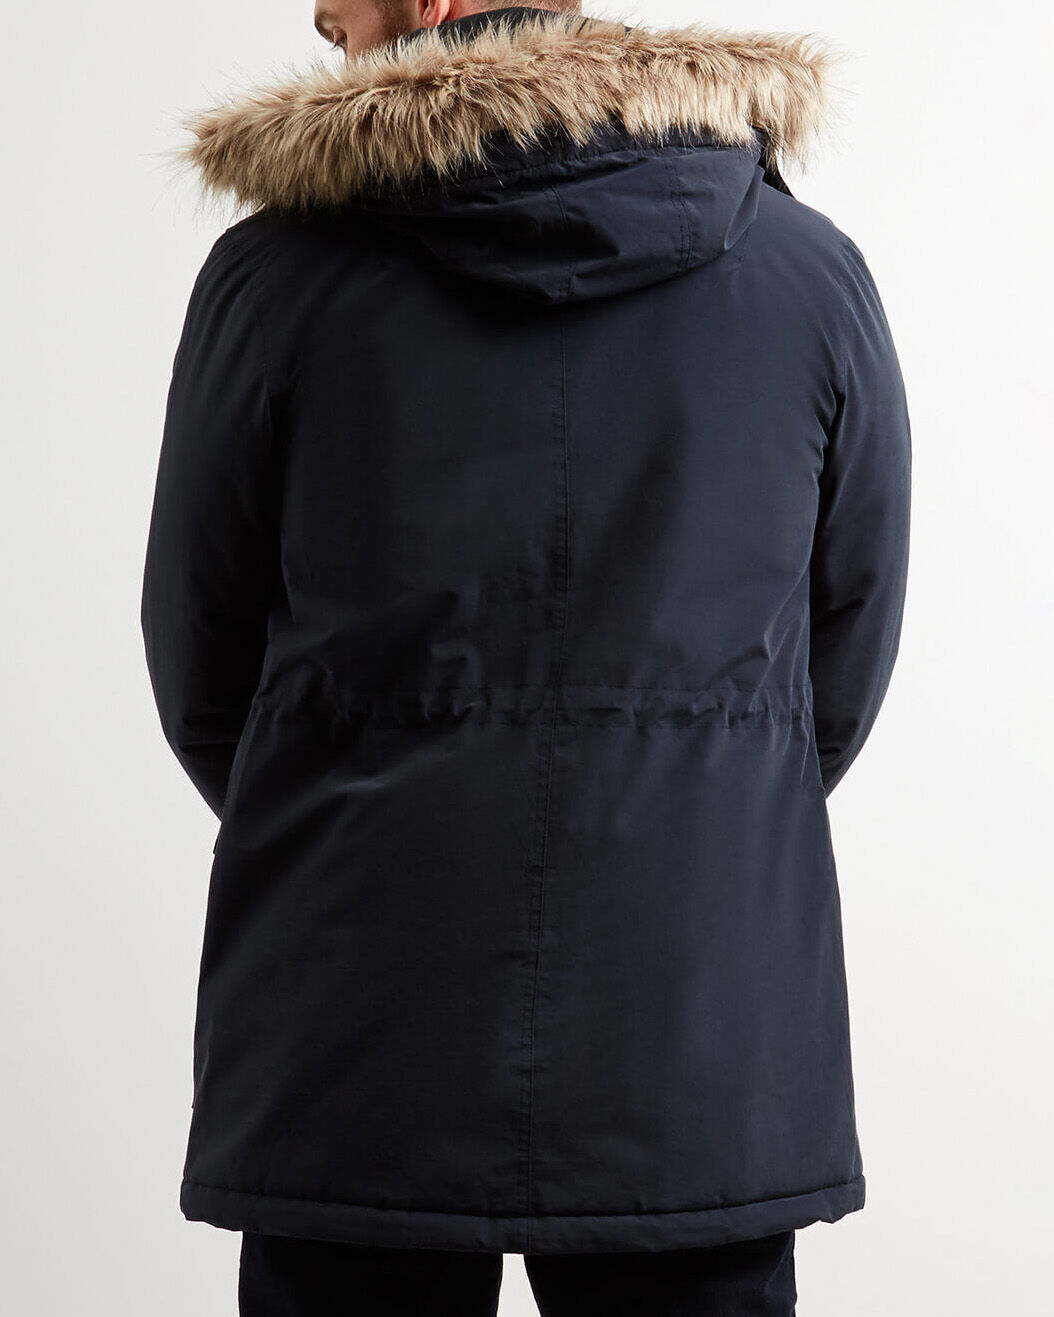 Lyle-and-Scott-Mens-Winterweight-Microfleece-Lined-Parka thumbnail 7